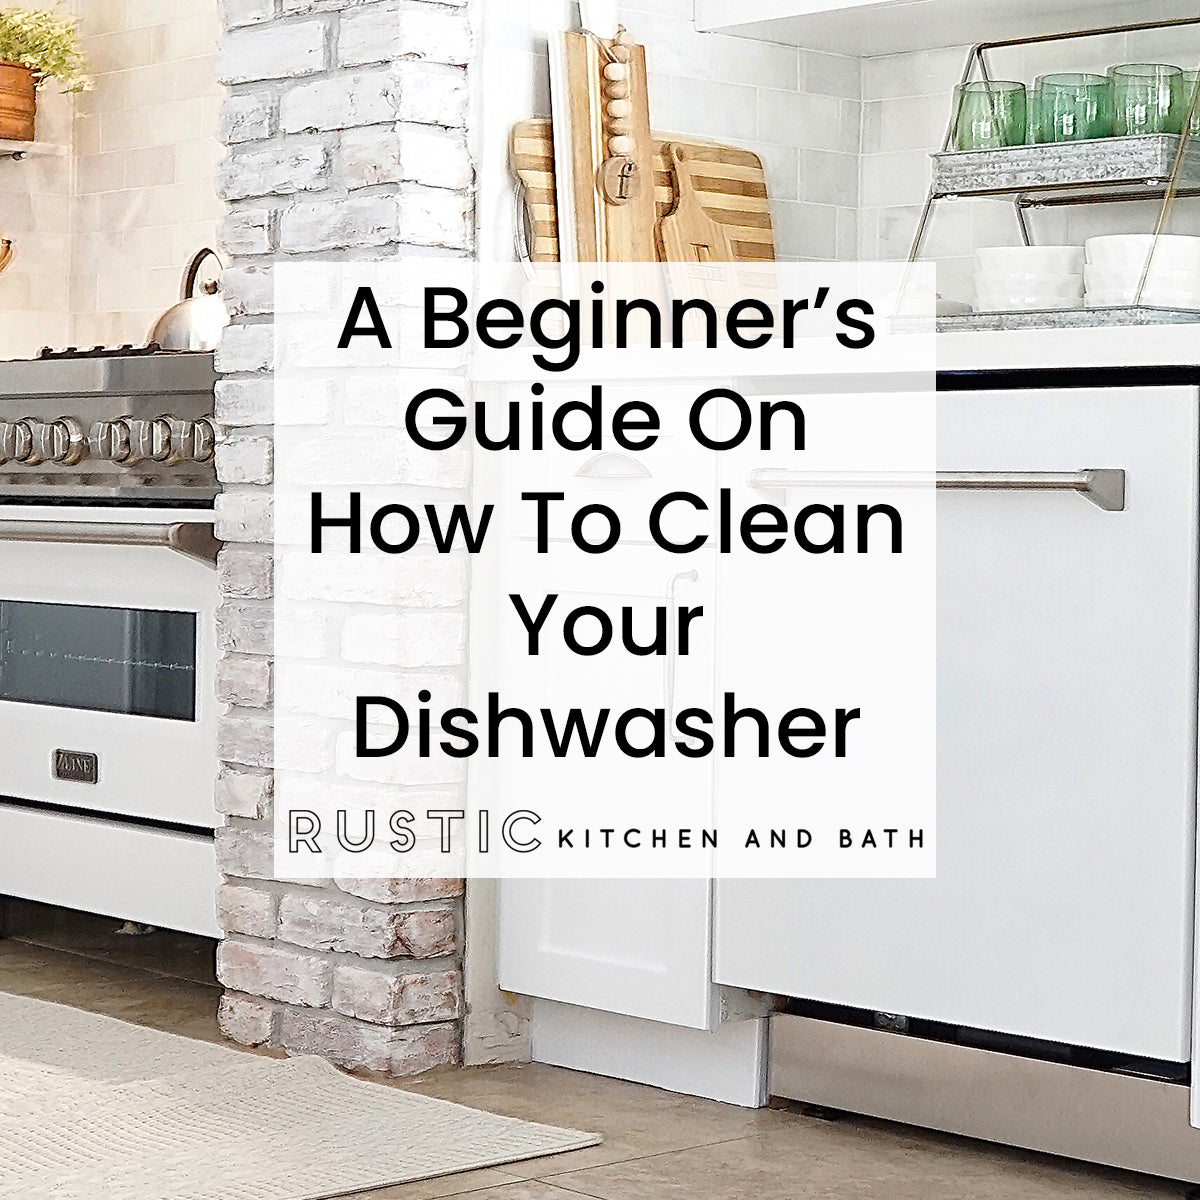 A Beginner's Guide on How to Clean Your Dishwasher Blog